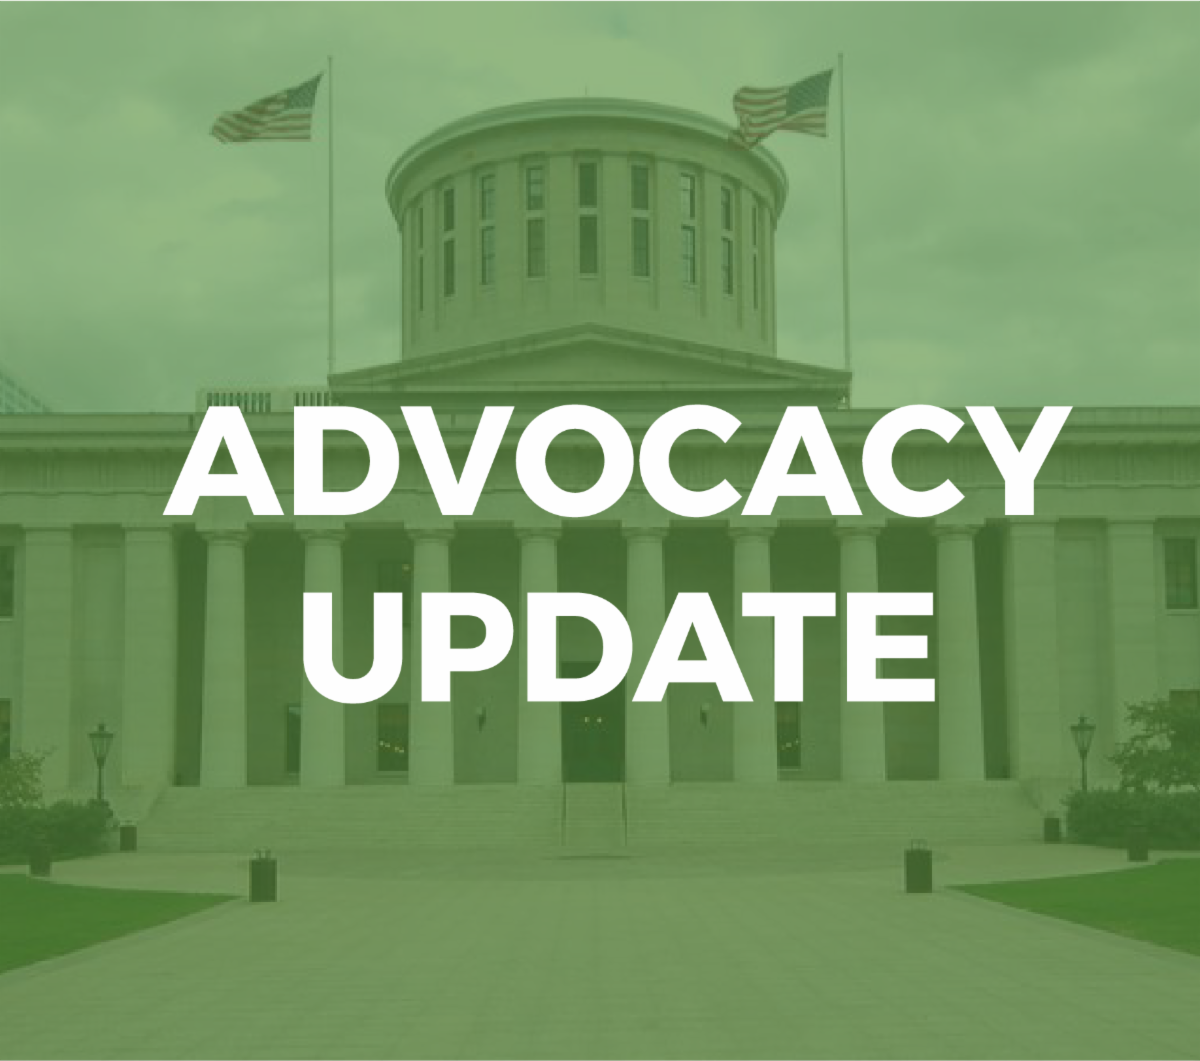 ADVOCACY UPDATE.png